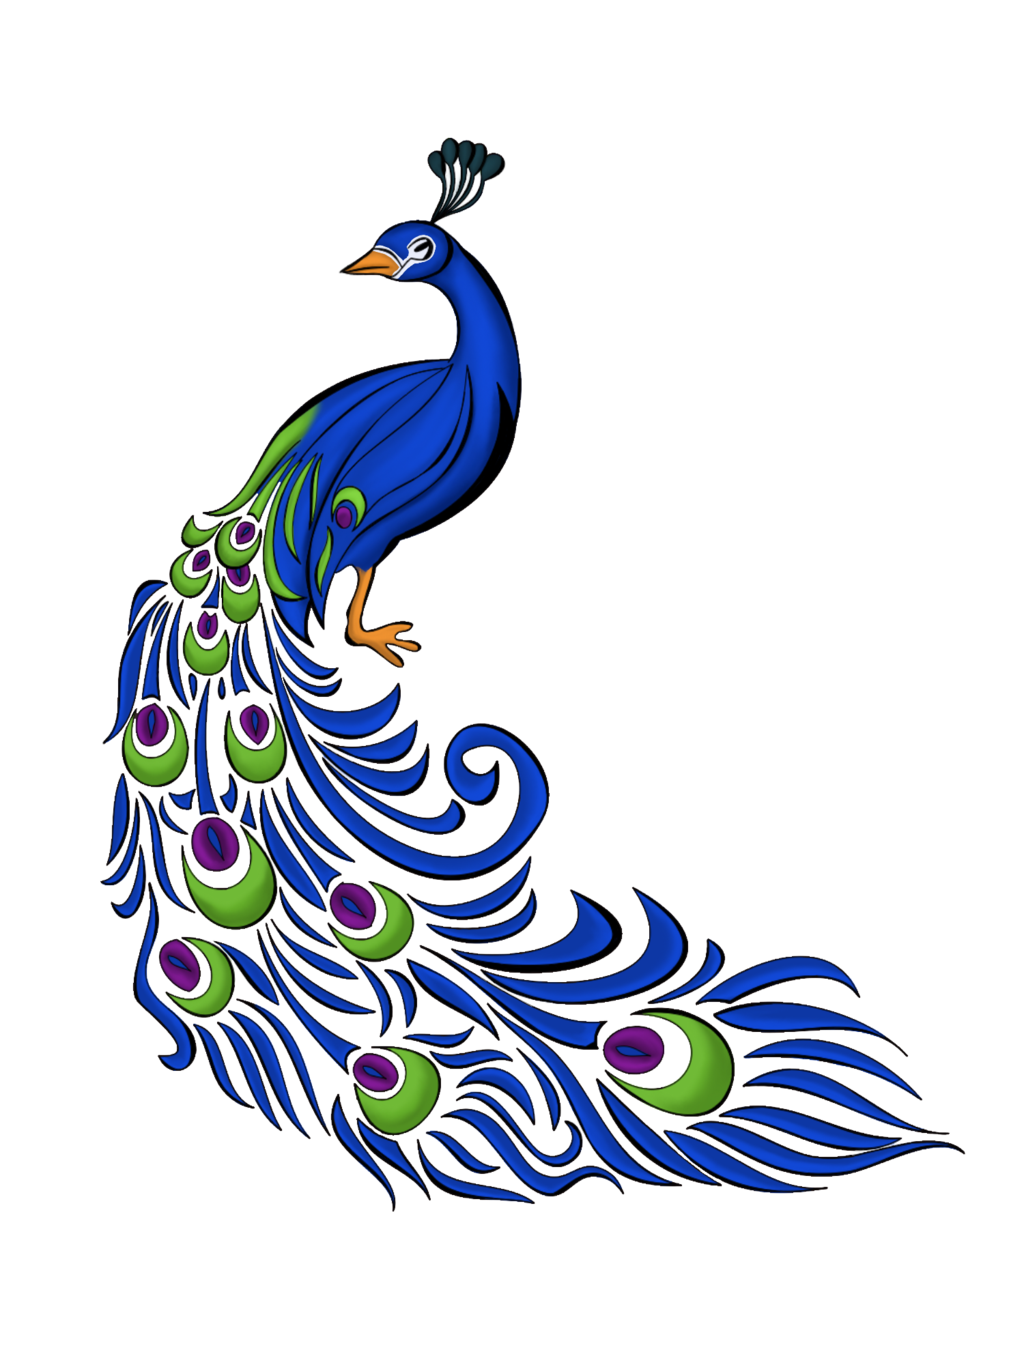 peacock feather vector free graphics and art jobspapa awesome rh pinterest com peacock clip art for invitations peacock clipart black and white